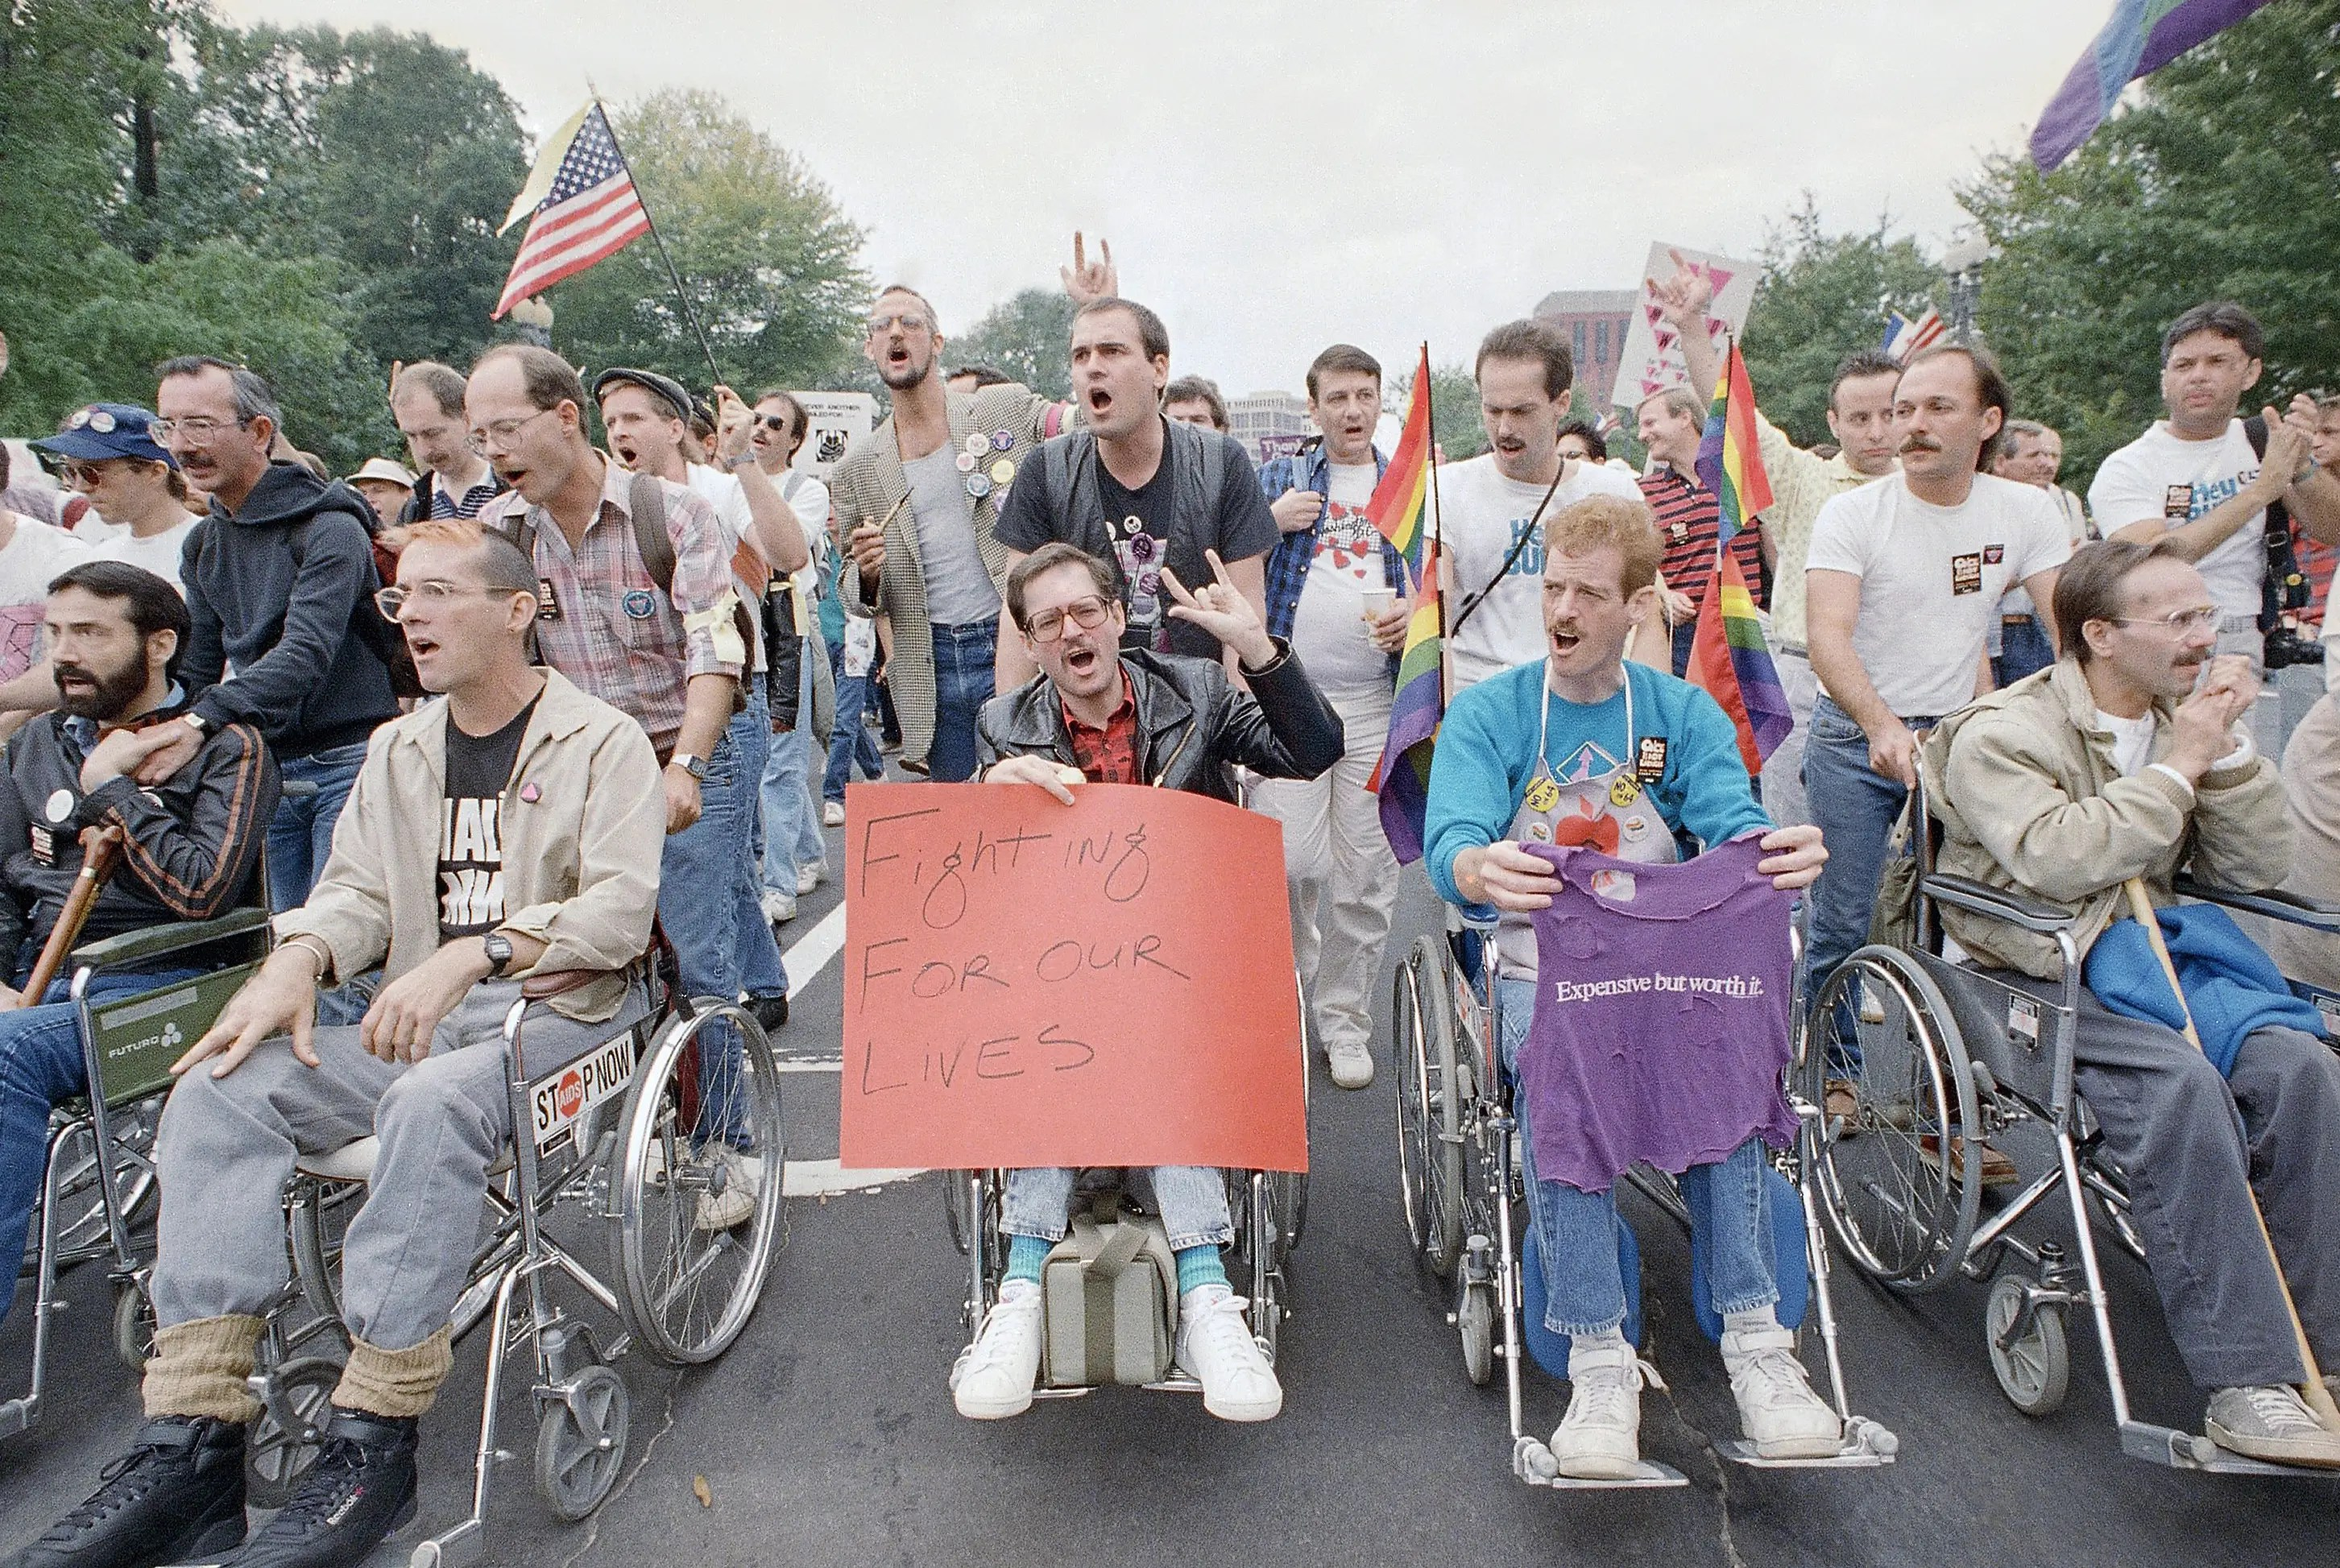 When the HIV/AIDs epidemic hit in the '80s and '90s, LGBT rights activists urged the federal government to fund research and treatment. The Second National March on Washington for Lesbian and Gay Rights drew around 200,000 people in 1987.